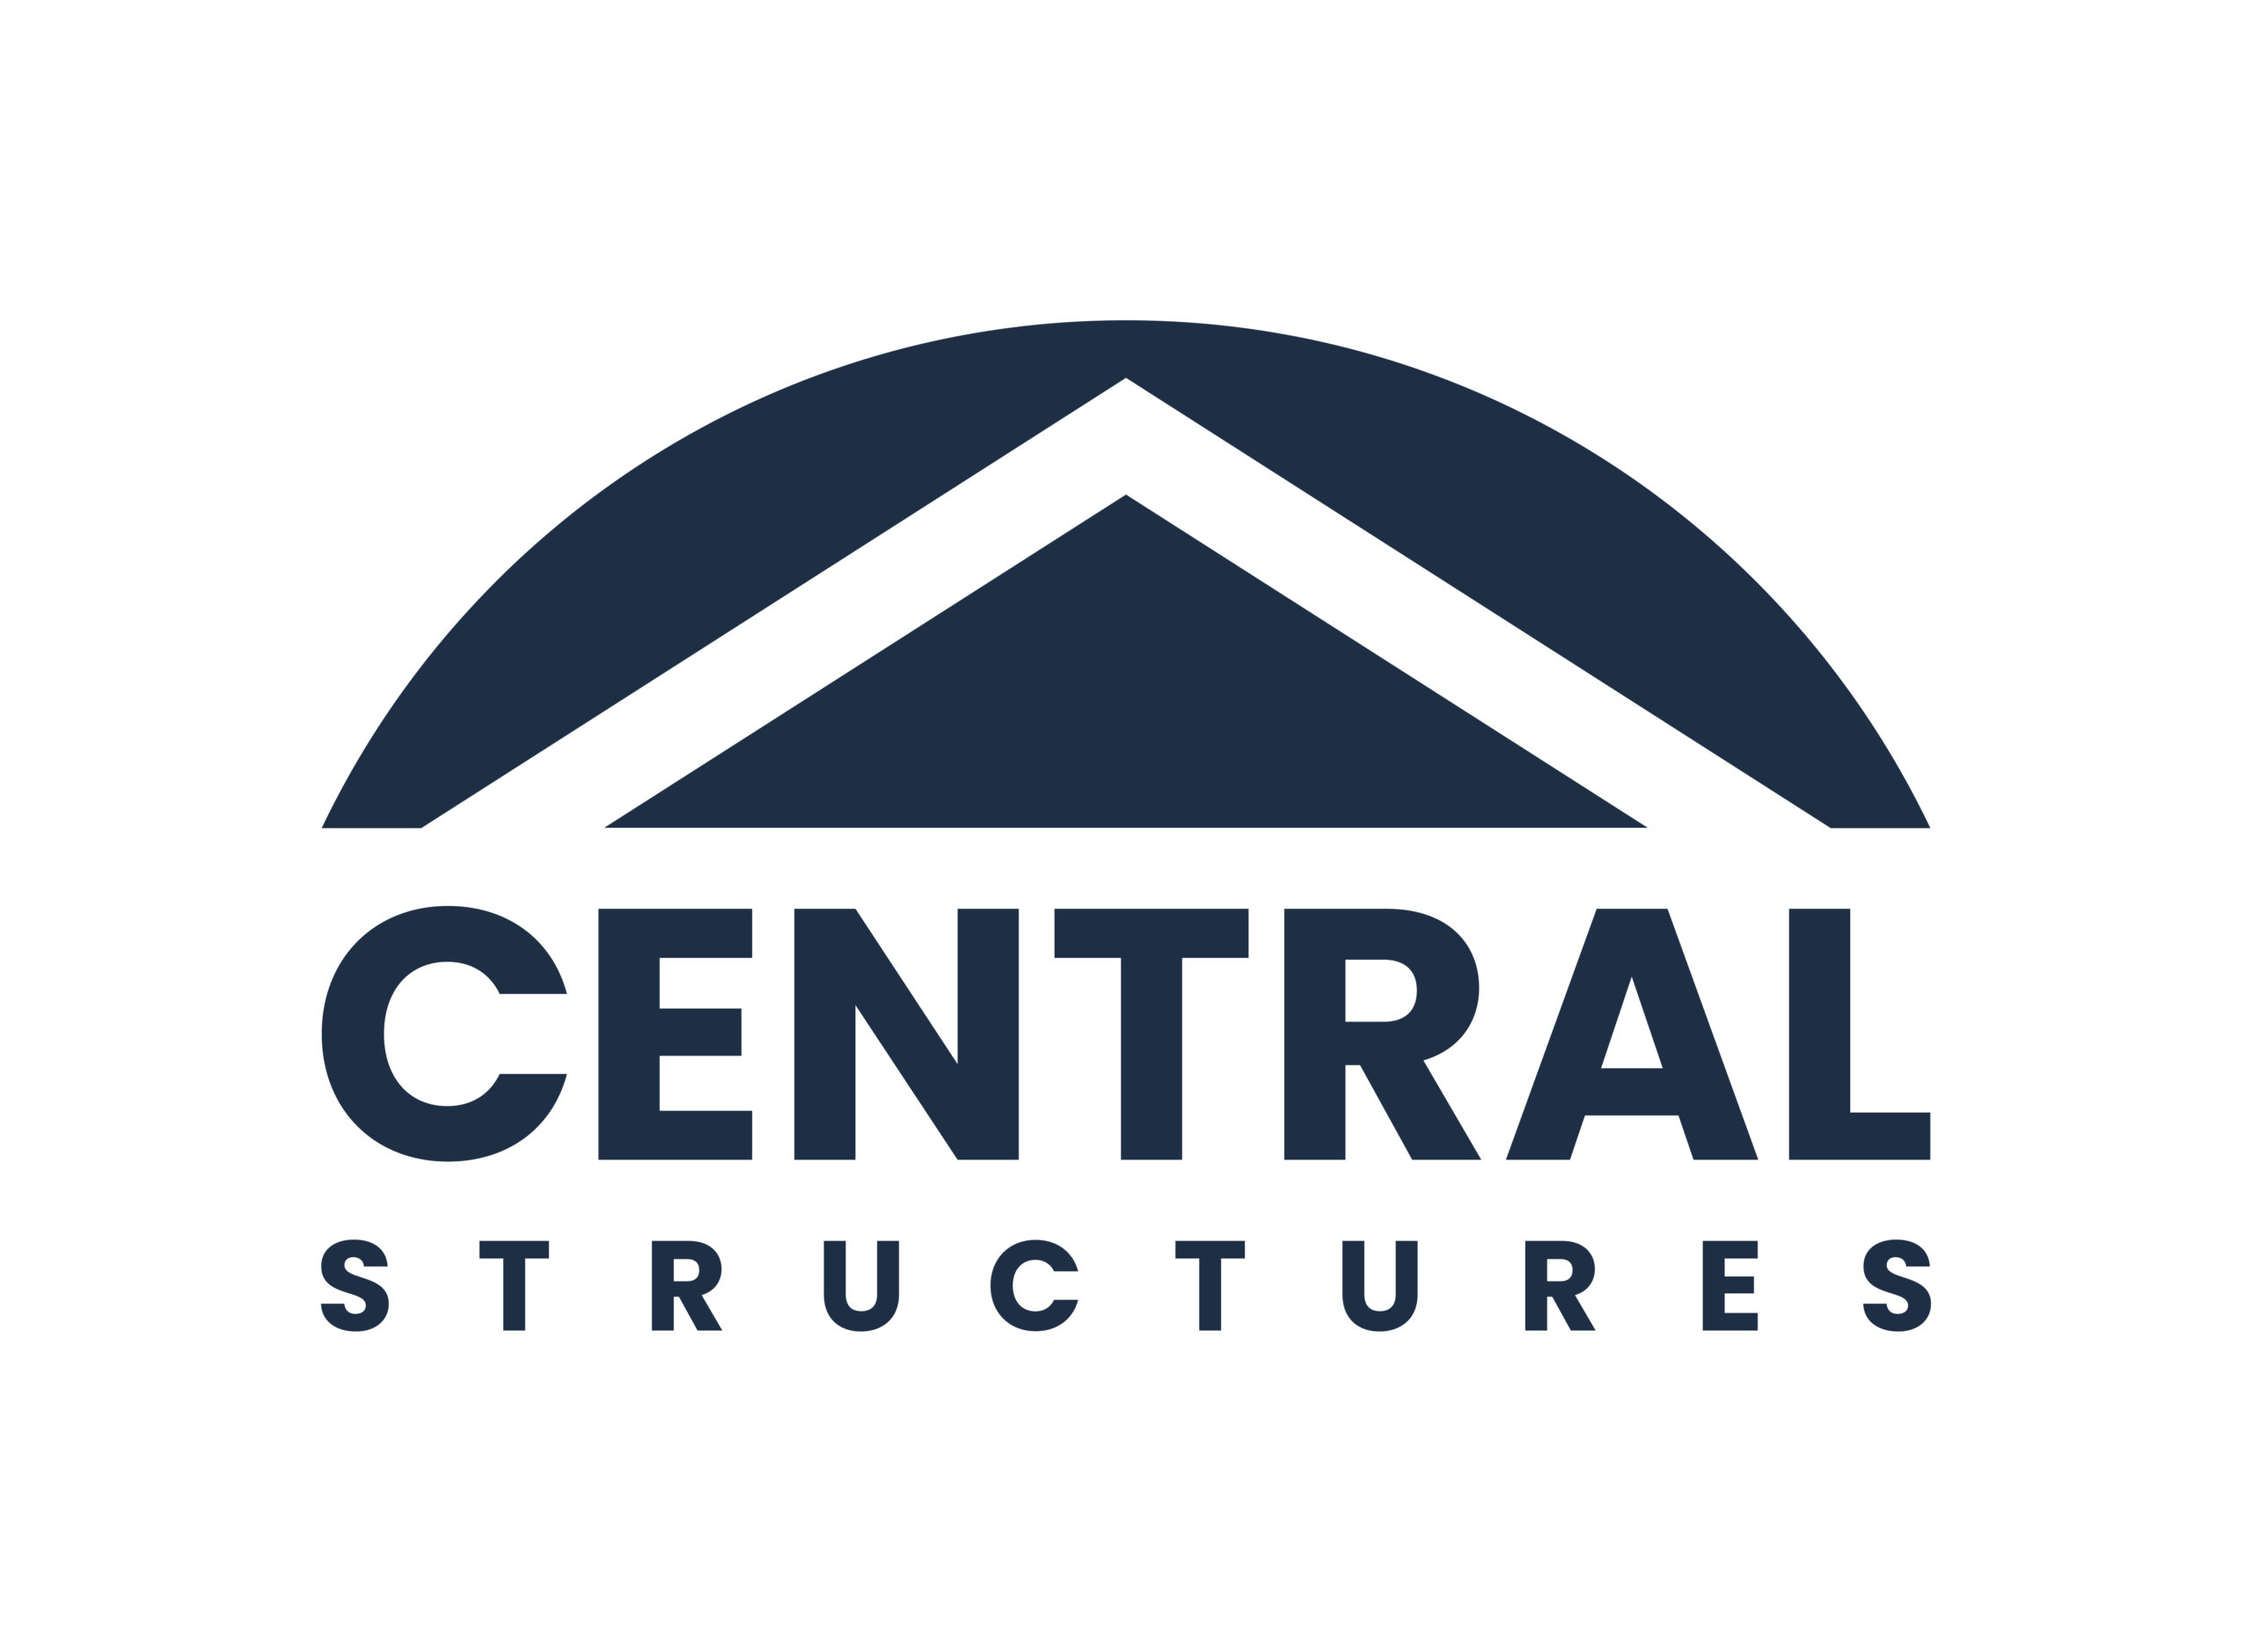 Central Structures - Build it Right.